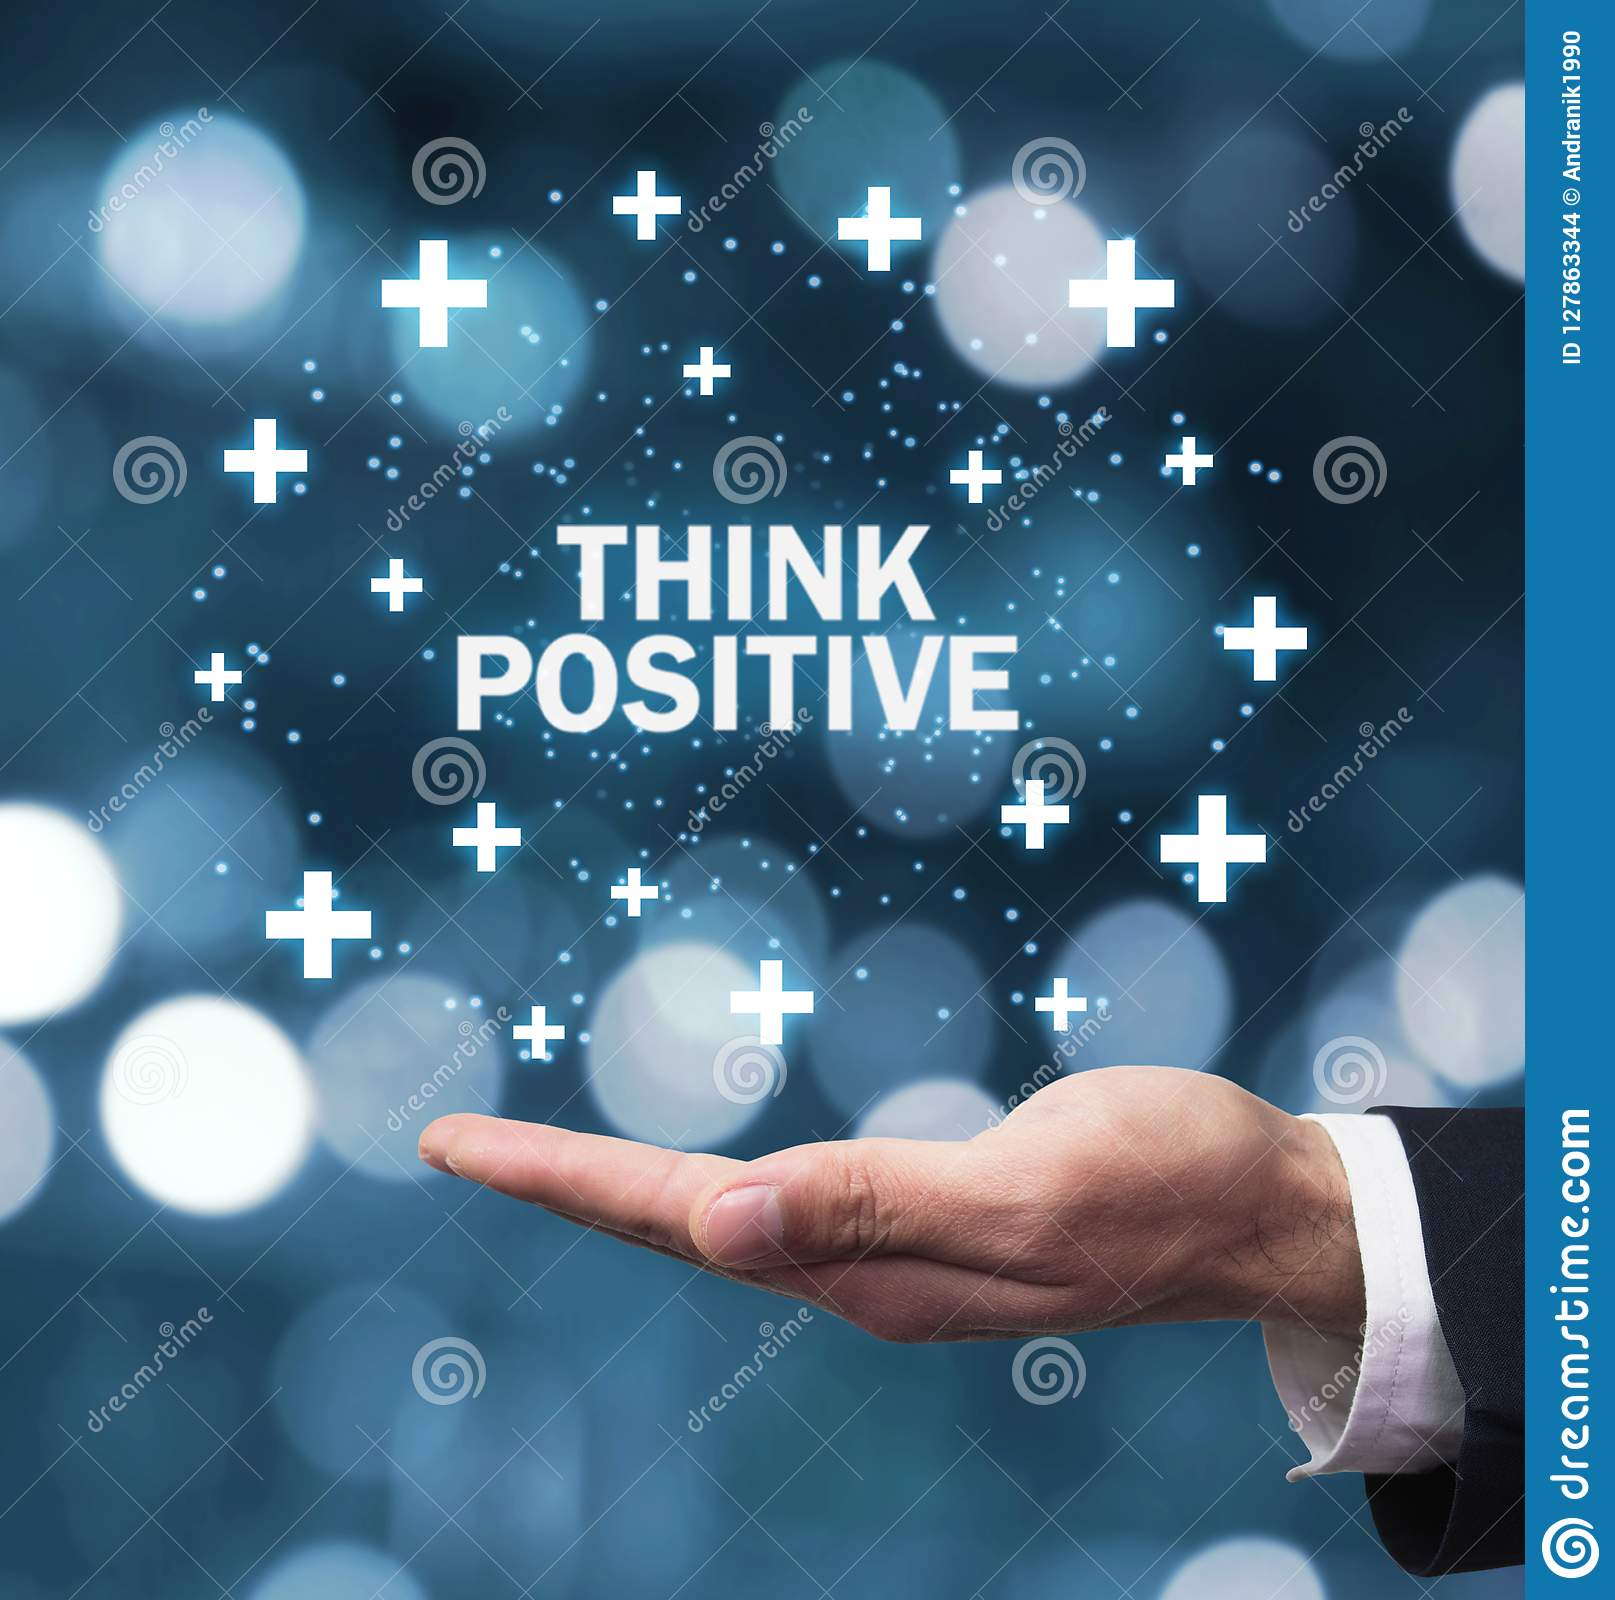 Man hand holding Think Positive words with plus signs.